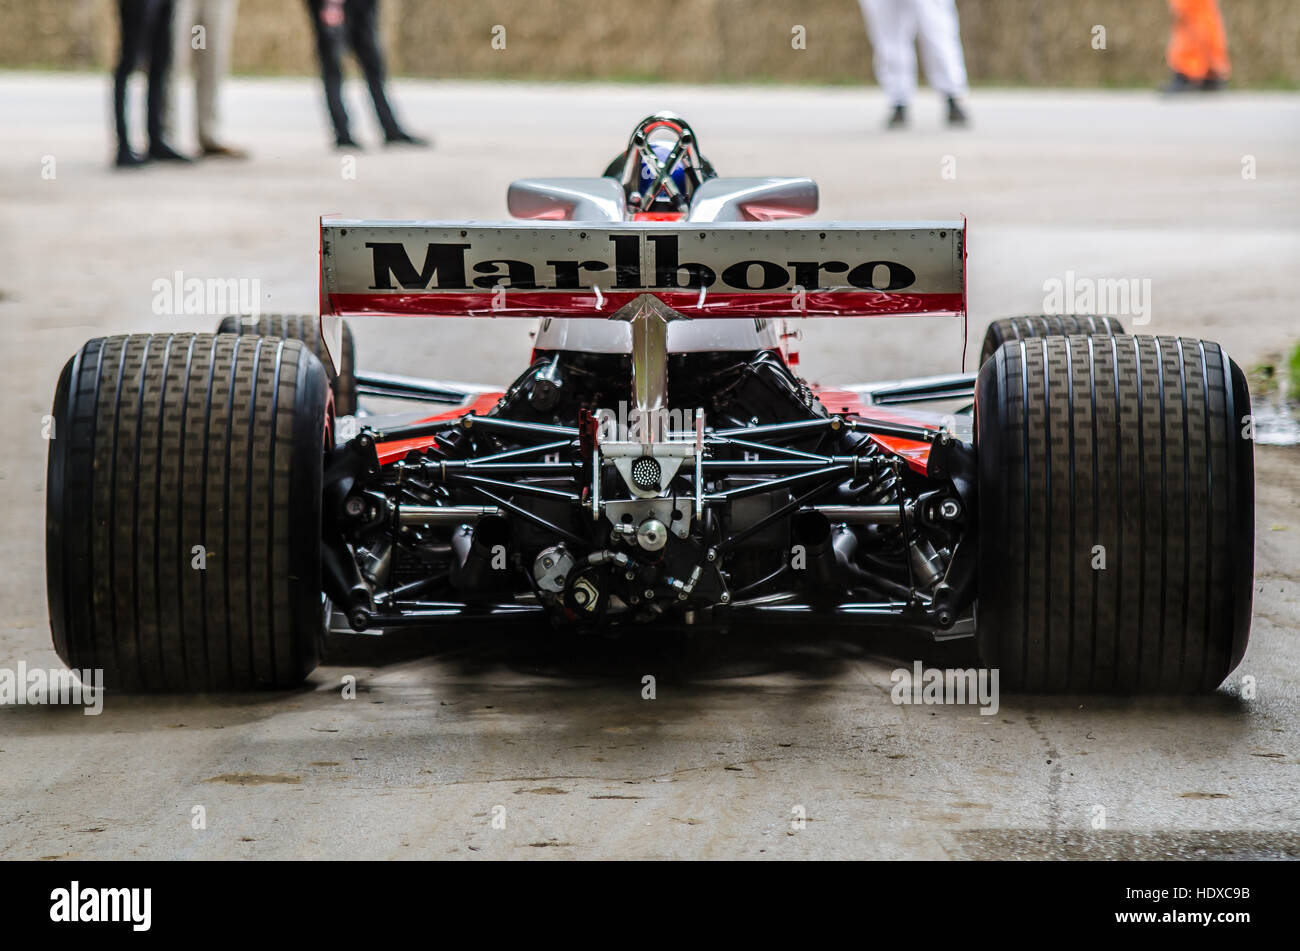 James Hunt's 1976 McLaren Cosworth M23 at the 2016 Goodwood Festival of Speed celebrating the fortieth year - Stock Image